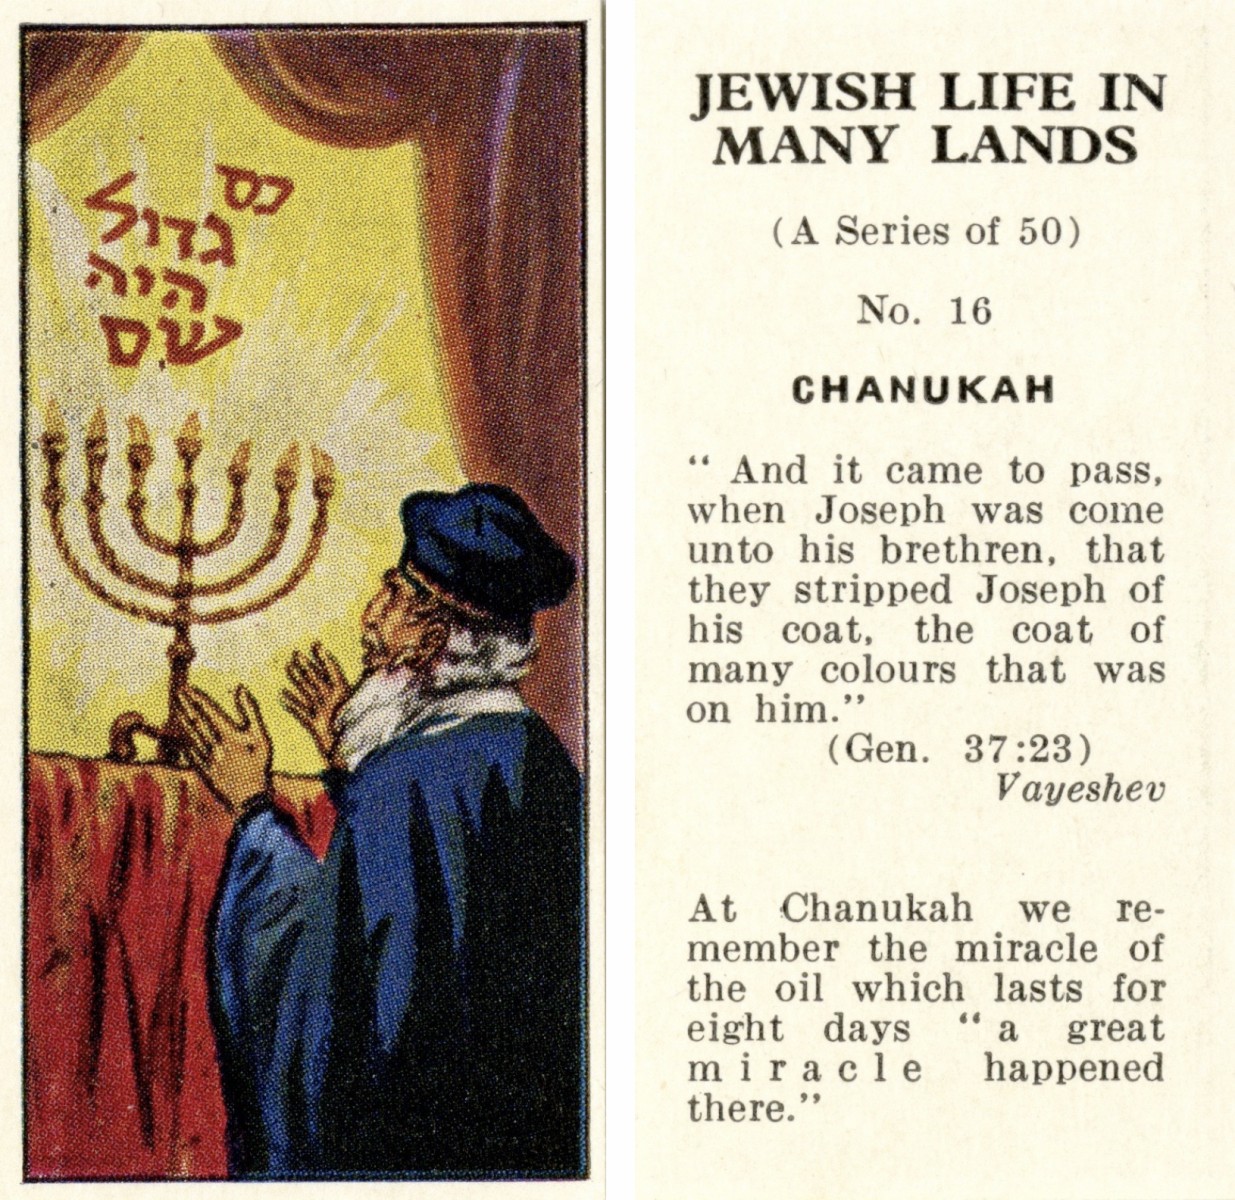 Obverse: color illustration of a person standing in front of a fully-lit 7-branched menorah. Hebrew script is written above the menorah. Reverse: Text reveals this is card number 16 out of 50. Genesis 37:23 is quoted.